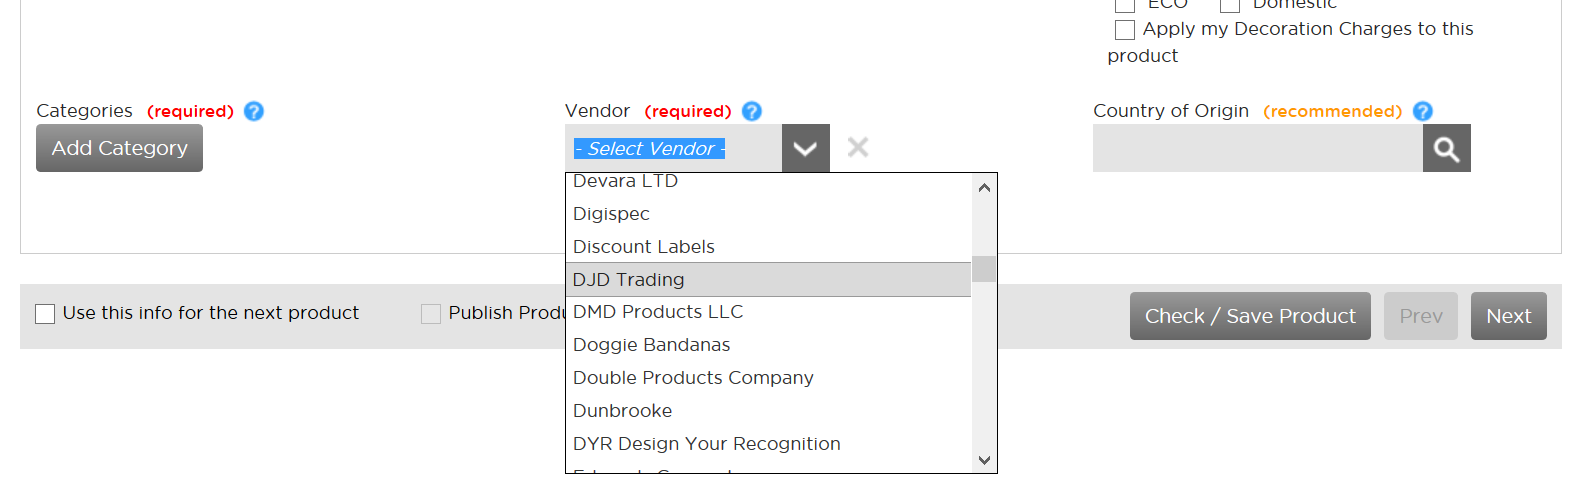 Adding a supplier to a product